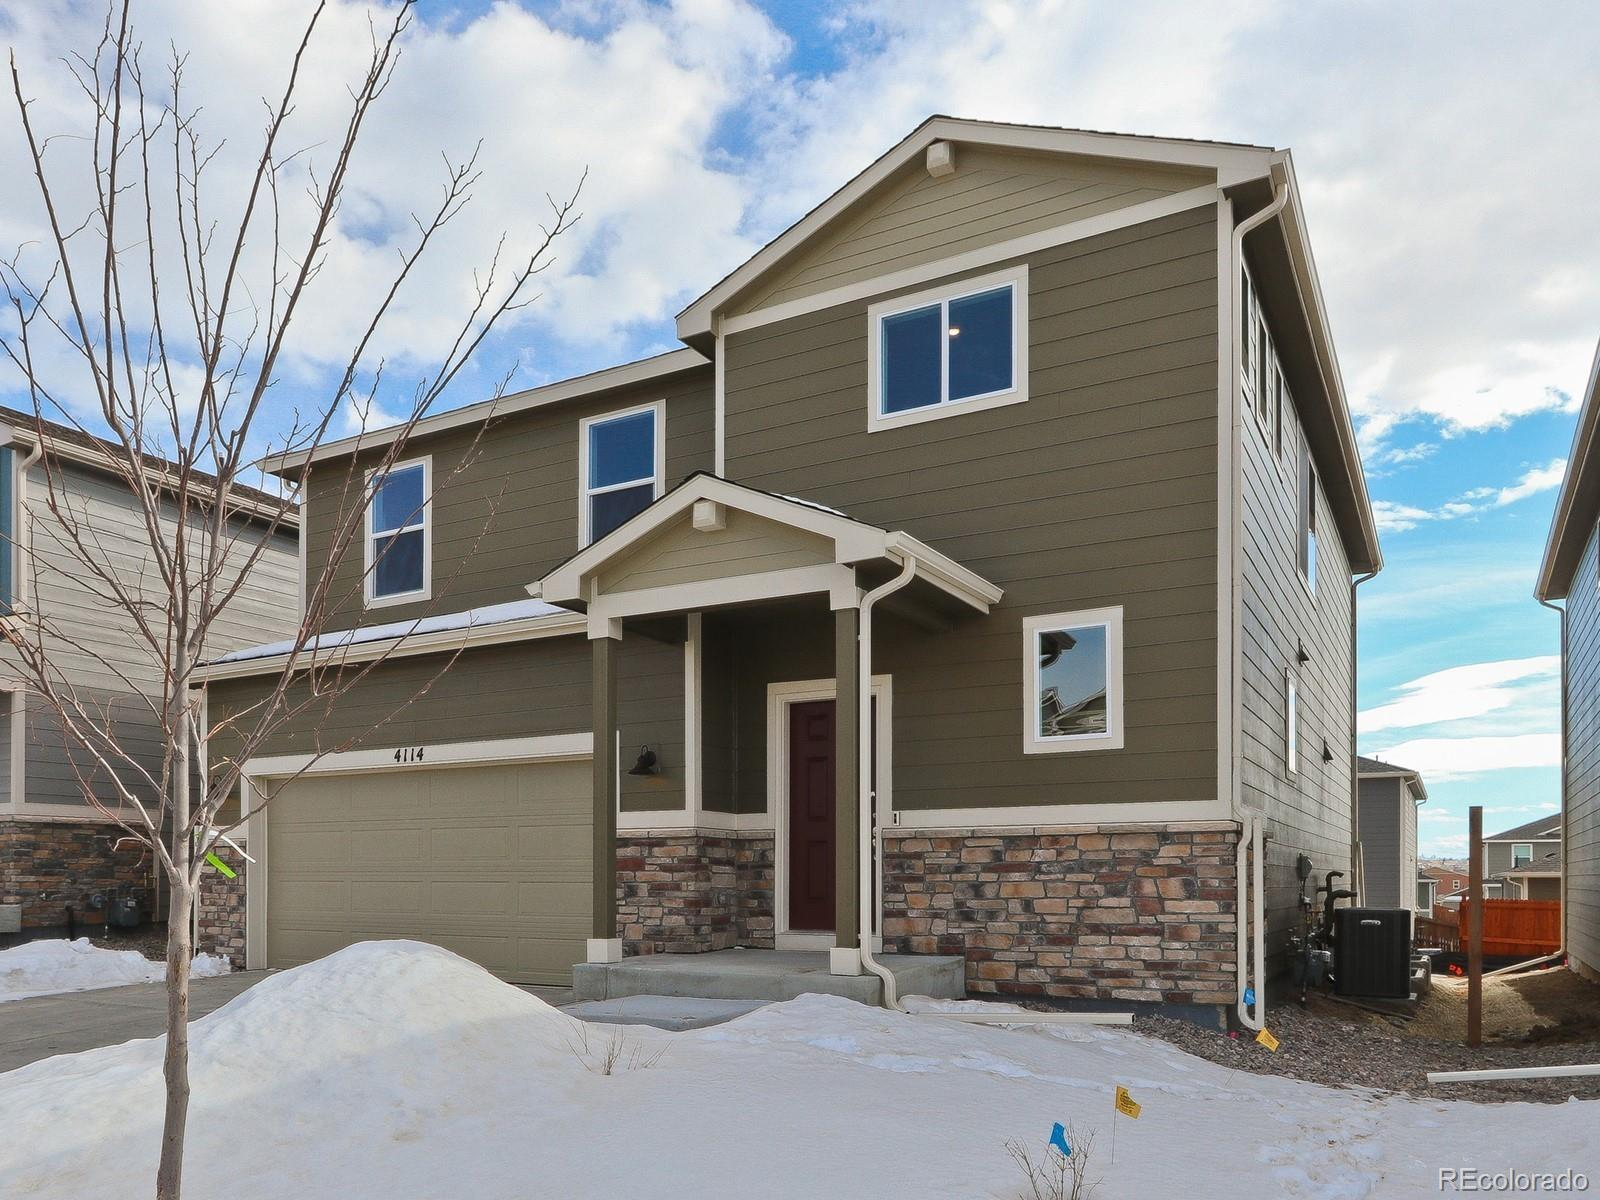 MLS# 6884287 - 2 - 4114 S Nepal Circle, Aurora, CO 80013